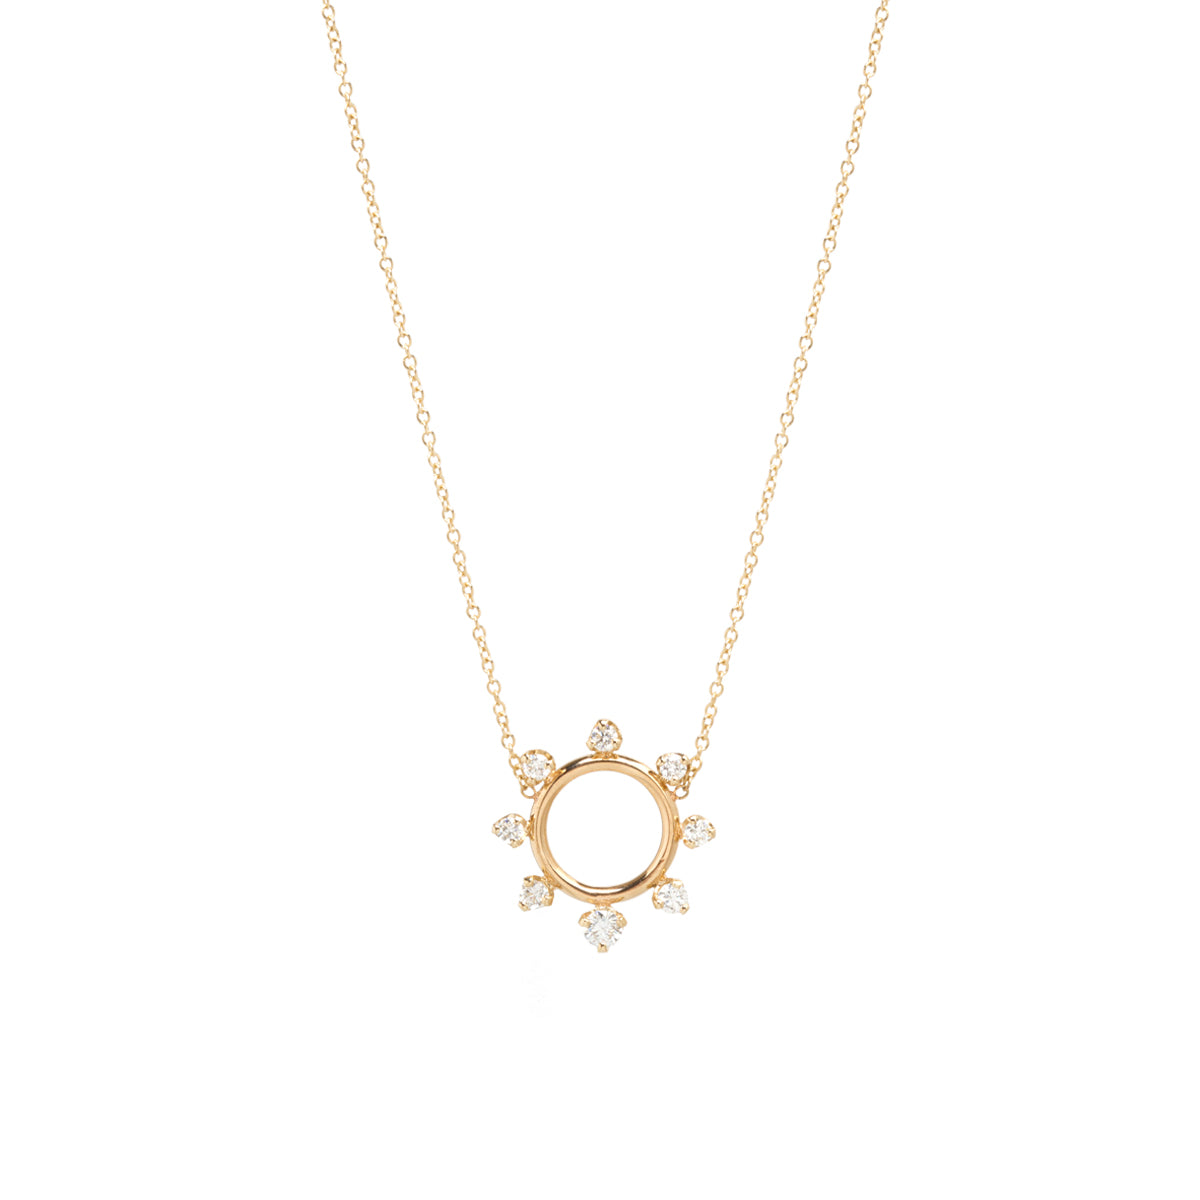 14k prong diamond circle necklace